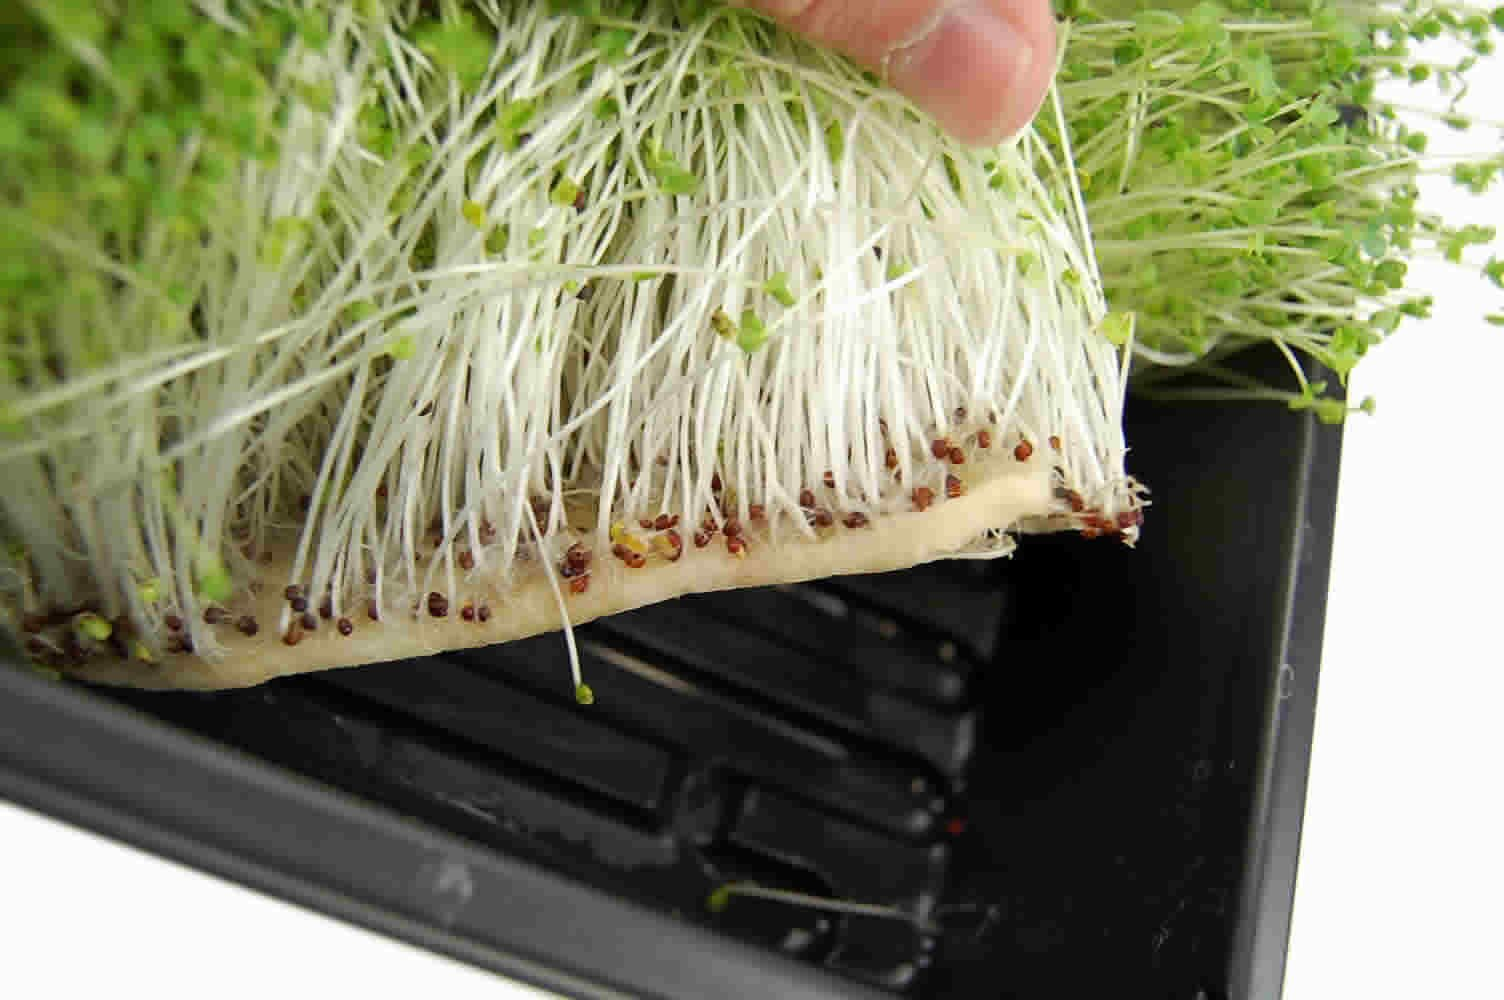 Micro-Mats Hydroponic Grow Pads - For Organic Production - 10 Pack - Plant & Seed Germination: Wheatgrass, Microgreens, More - For 20'' x 10'' Greenhouse Trays